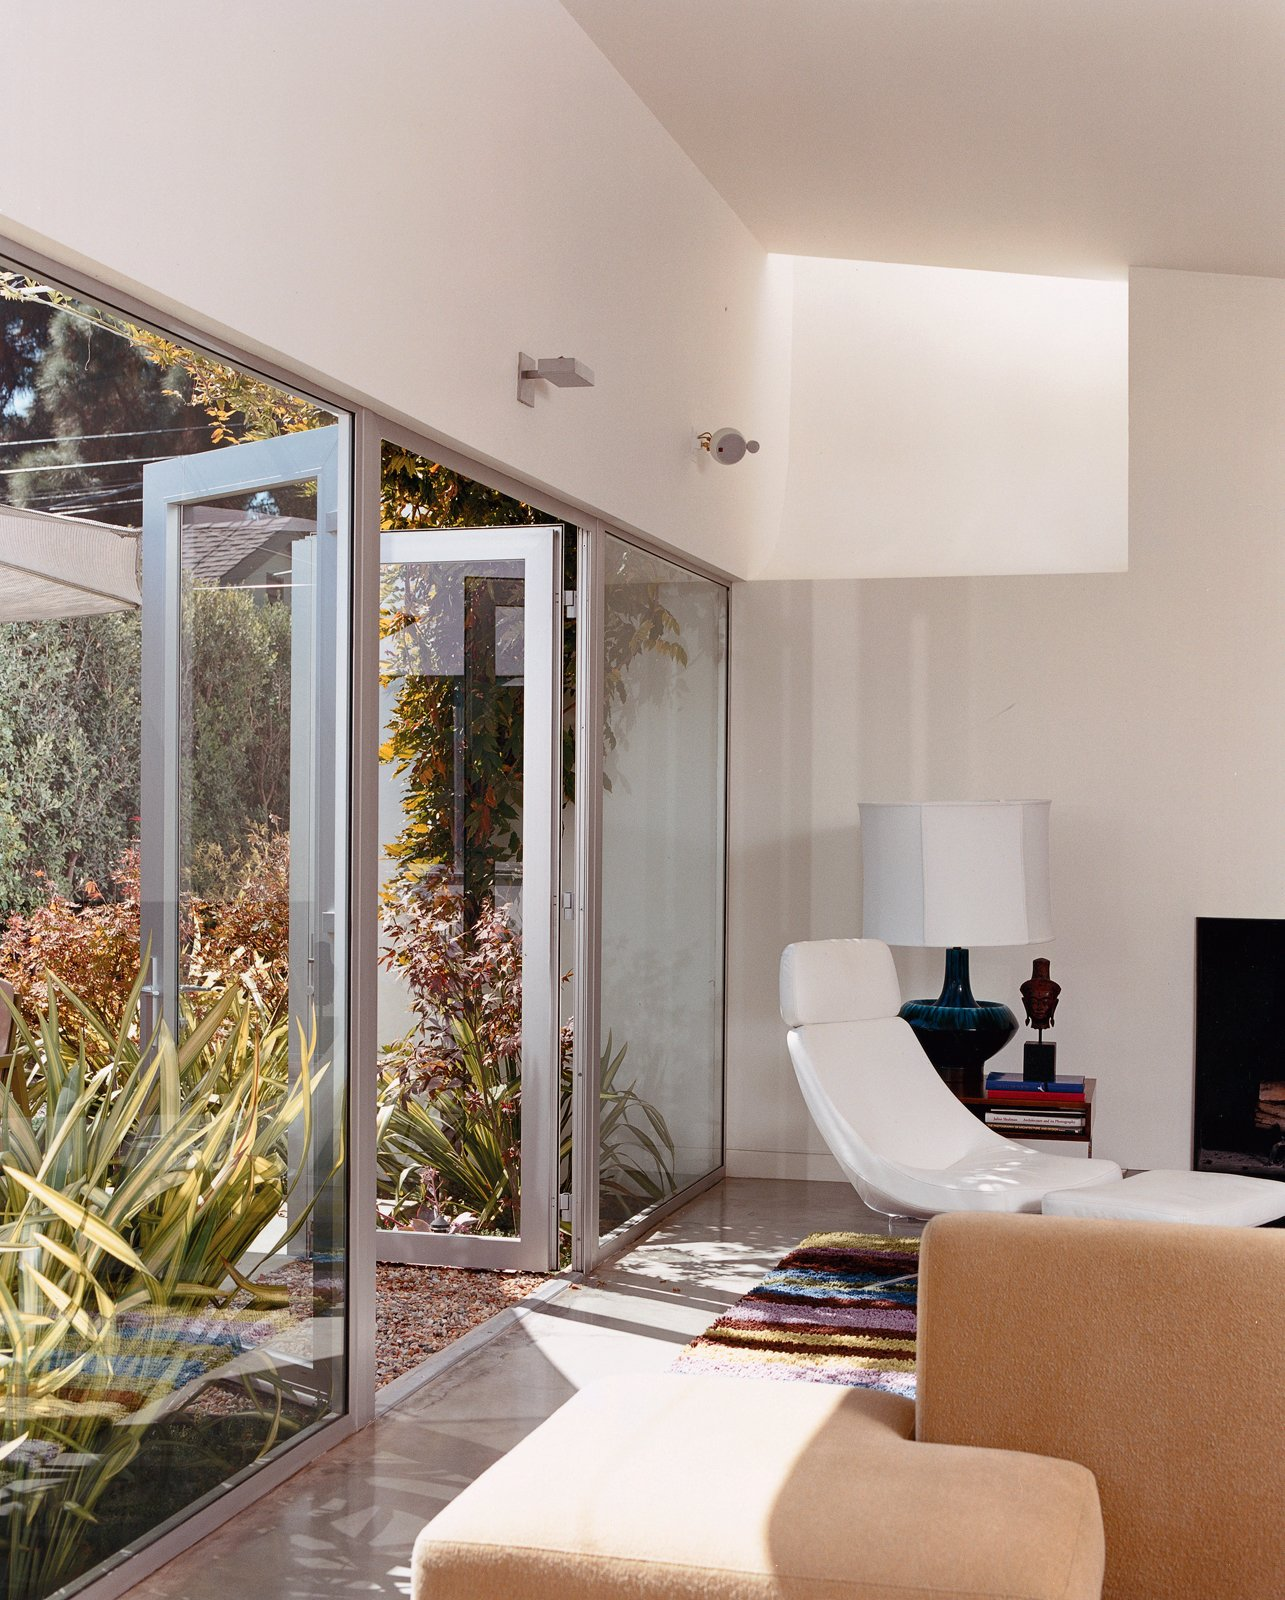 Seven-foot-high glass doors bring the garden, landscaped by Jay Griffith, into the living room. A skylight brings even more light into the white-walled room with polished-concrete floors. There is a splash of color in a custom rug designed by Dawn Farmer and made by Della Robbia, which also made the sofas. Tagged: Living Room, Recliner, and Concrete Floor.  Photo 2 of 9 in Venetian Vicissitude